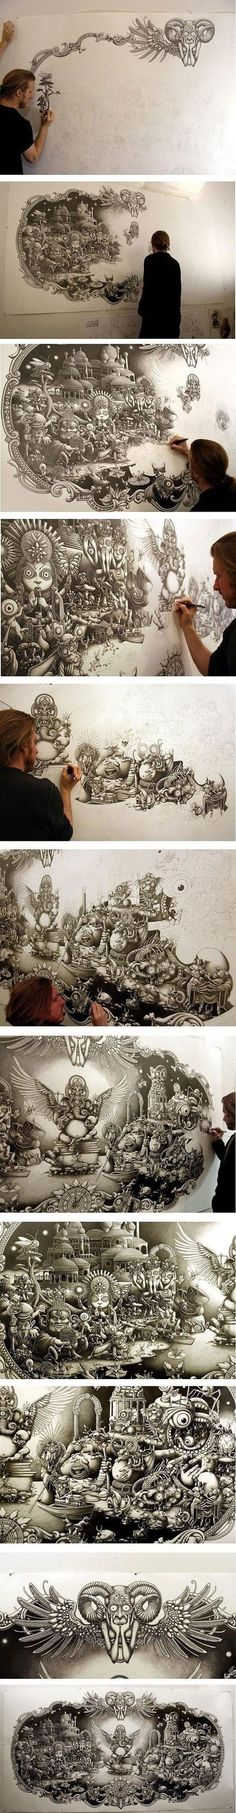 Amazing pencil art... Wow how do you even start something like this?: